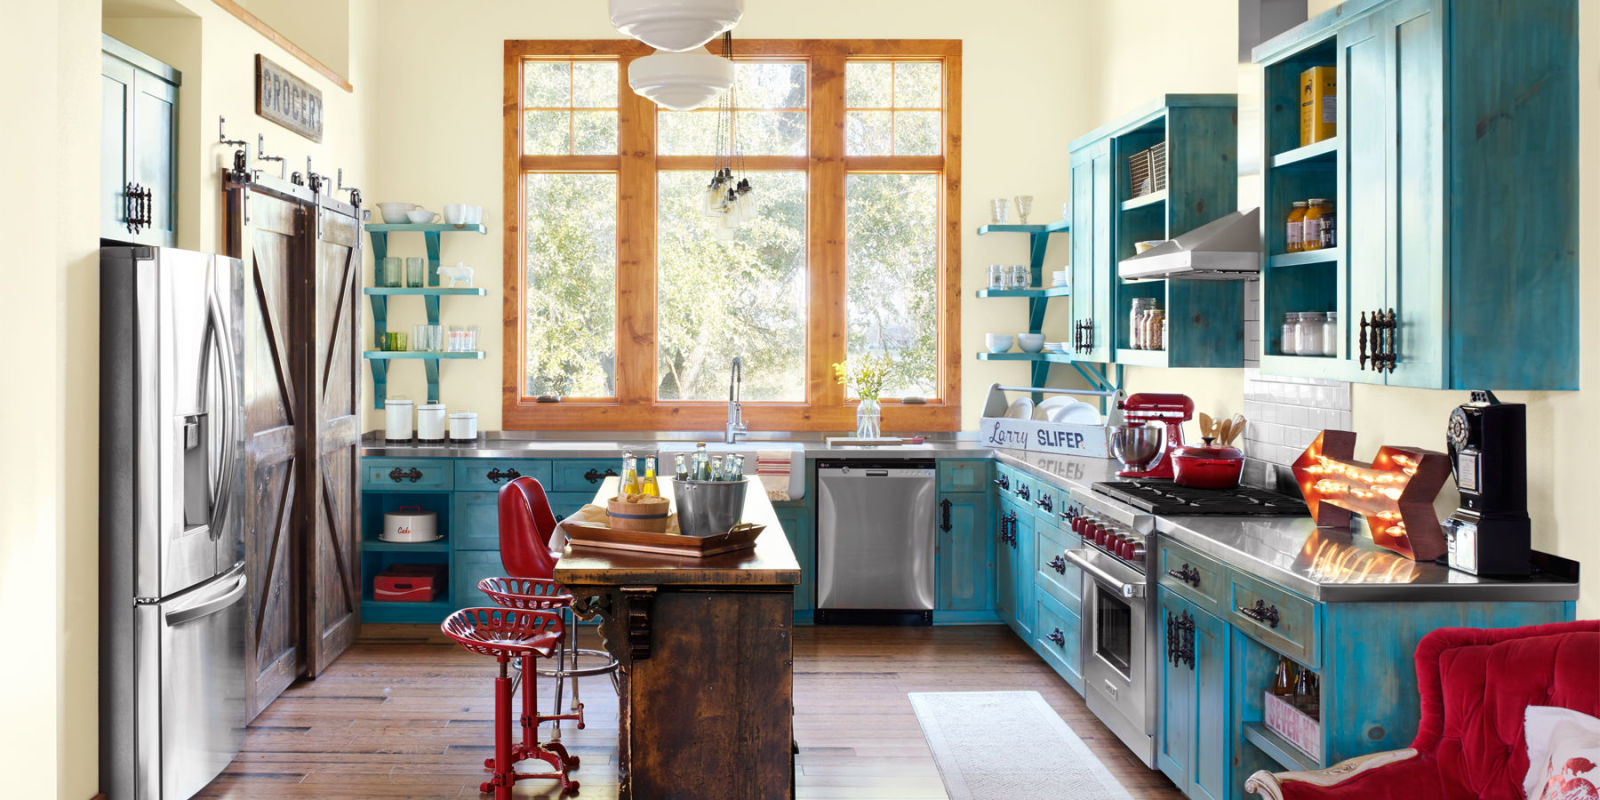 Use Rustic Home Design Ideas for Kitchen with Blue Counter and Oak Island near Unususl Stools